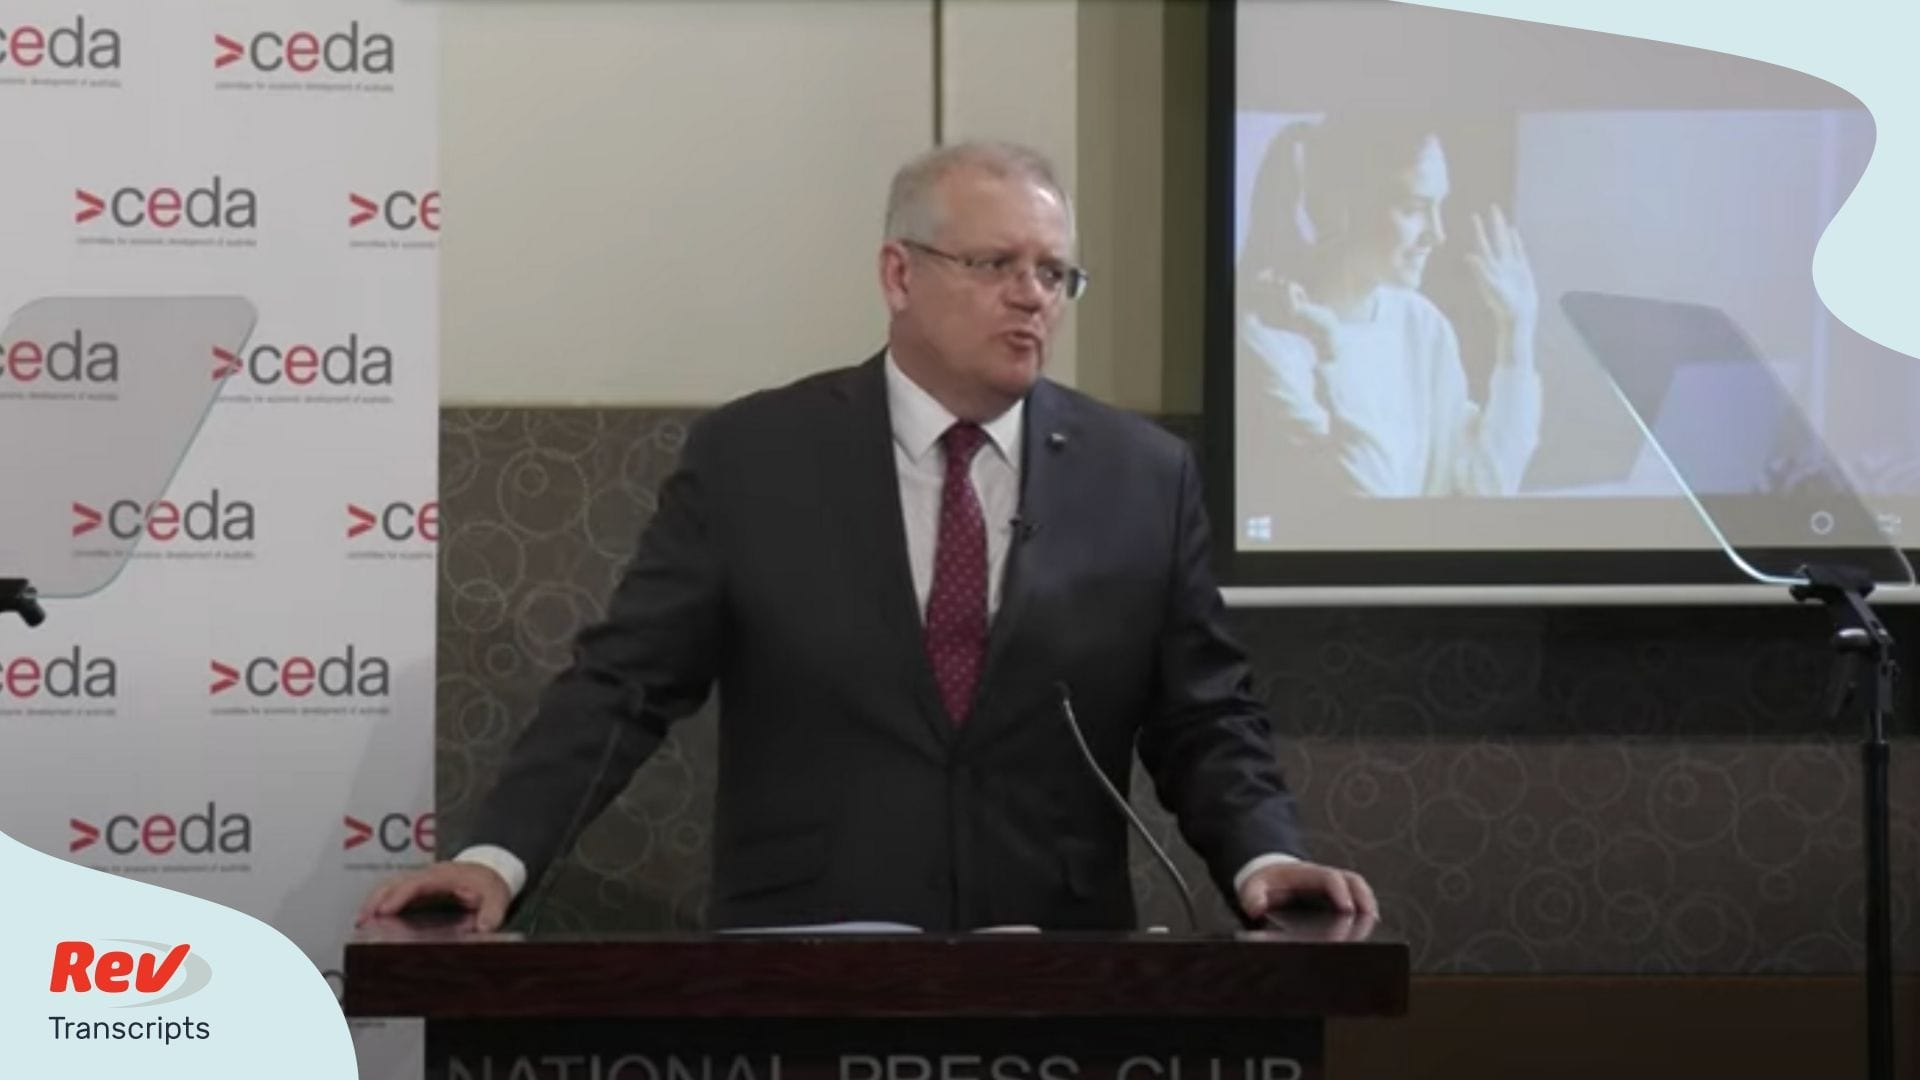 Scott Morrison Press Conference June 15